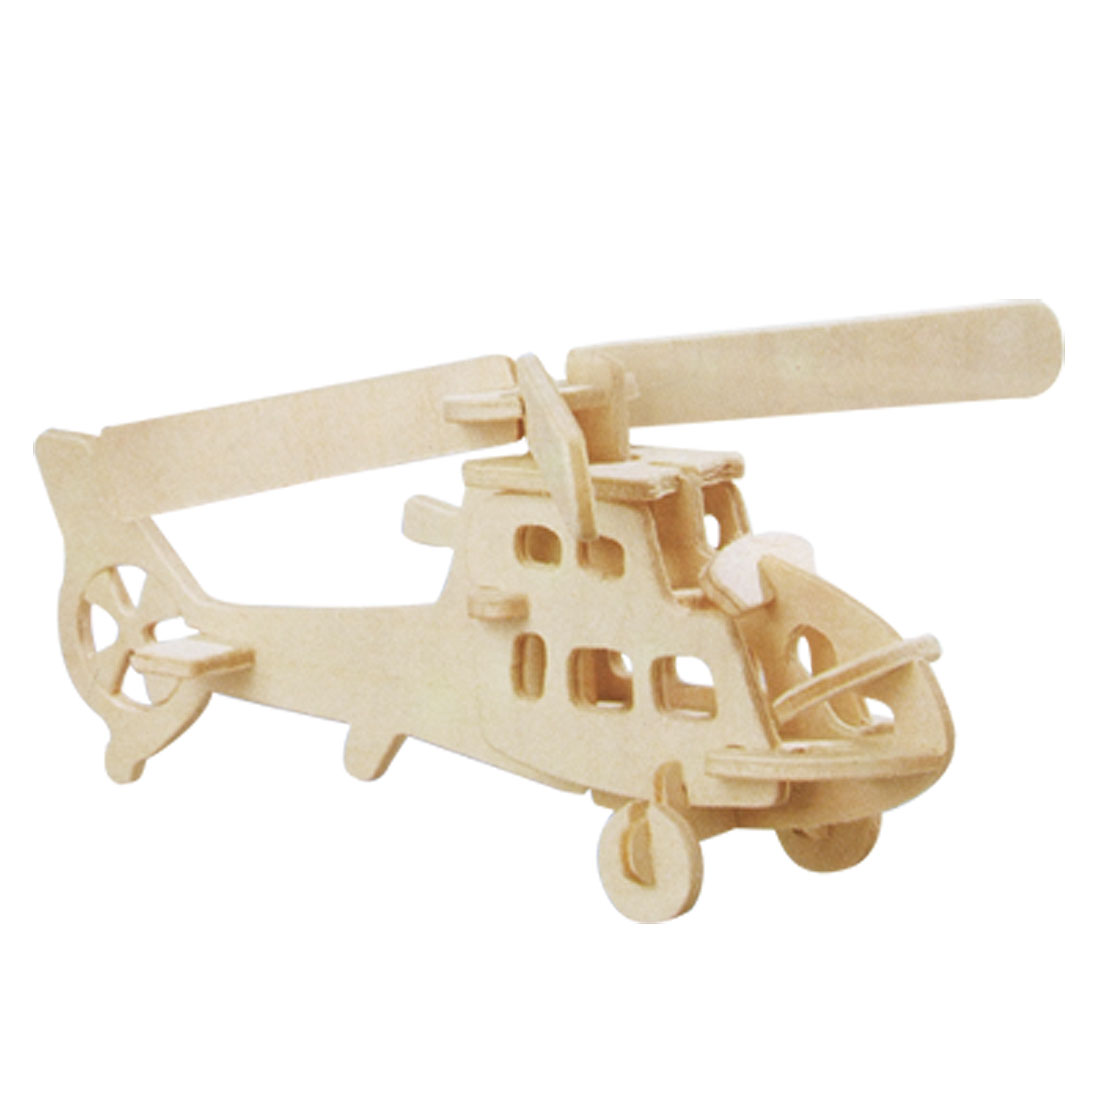 Self-assemble Fighterplane Puzzle 3D Wood Model Kit Toy